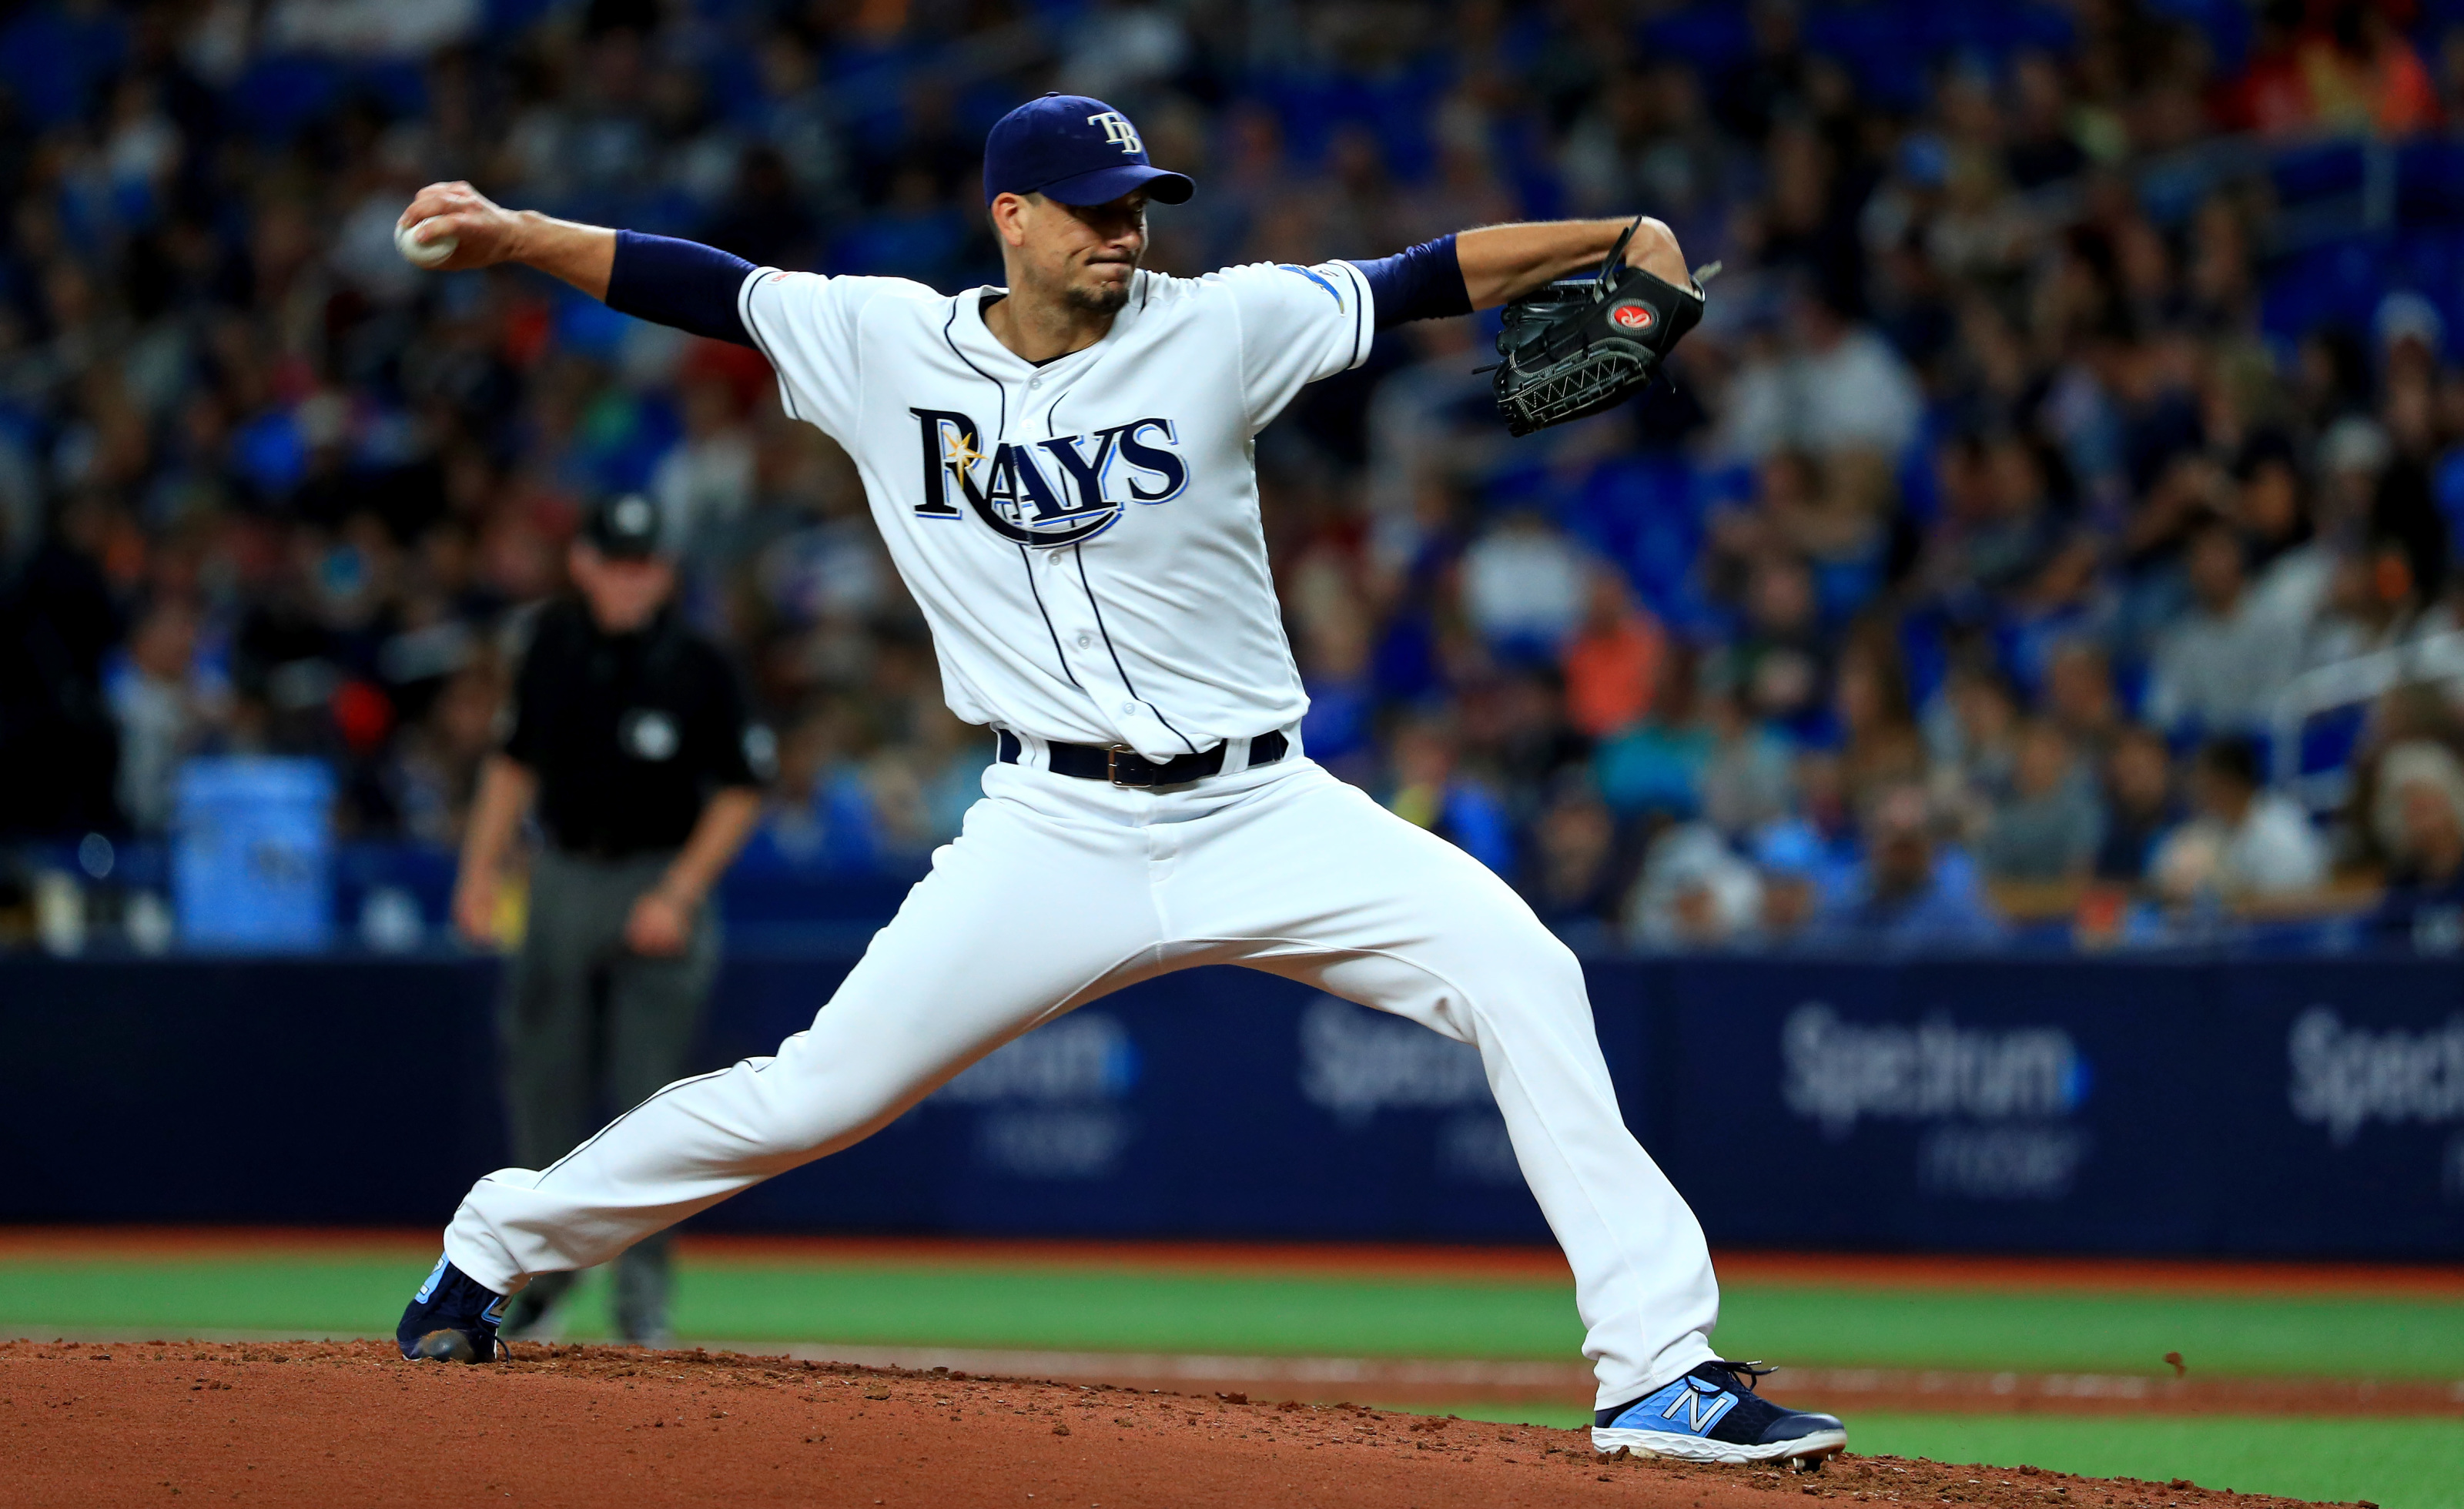 tampa bay rays do we care that charlie morton is trying to save face https calltothepen com 2020 02 09 tampa bay rays charlie morton trying save face